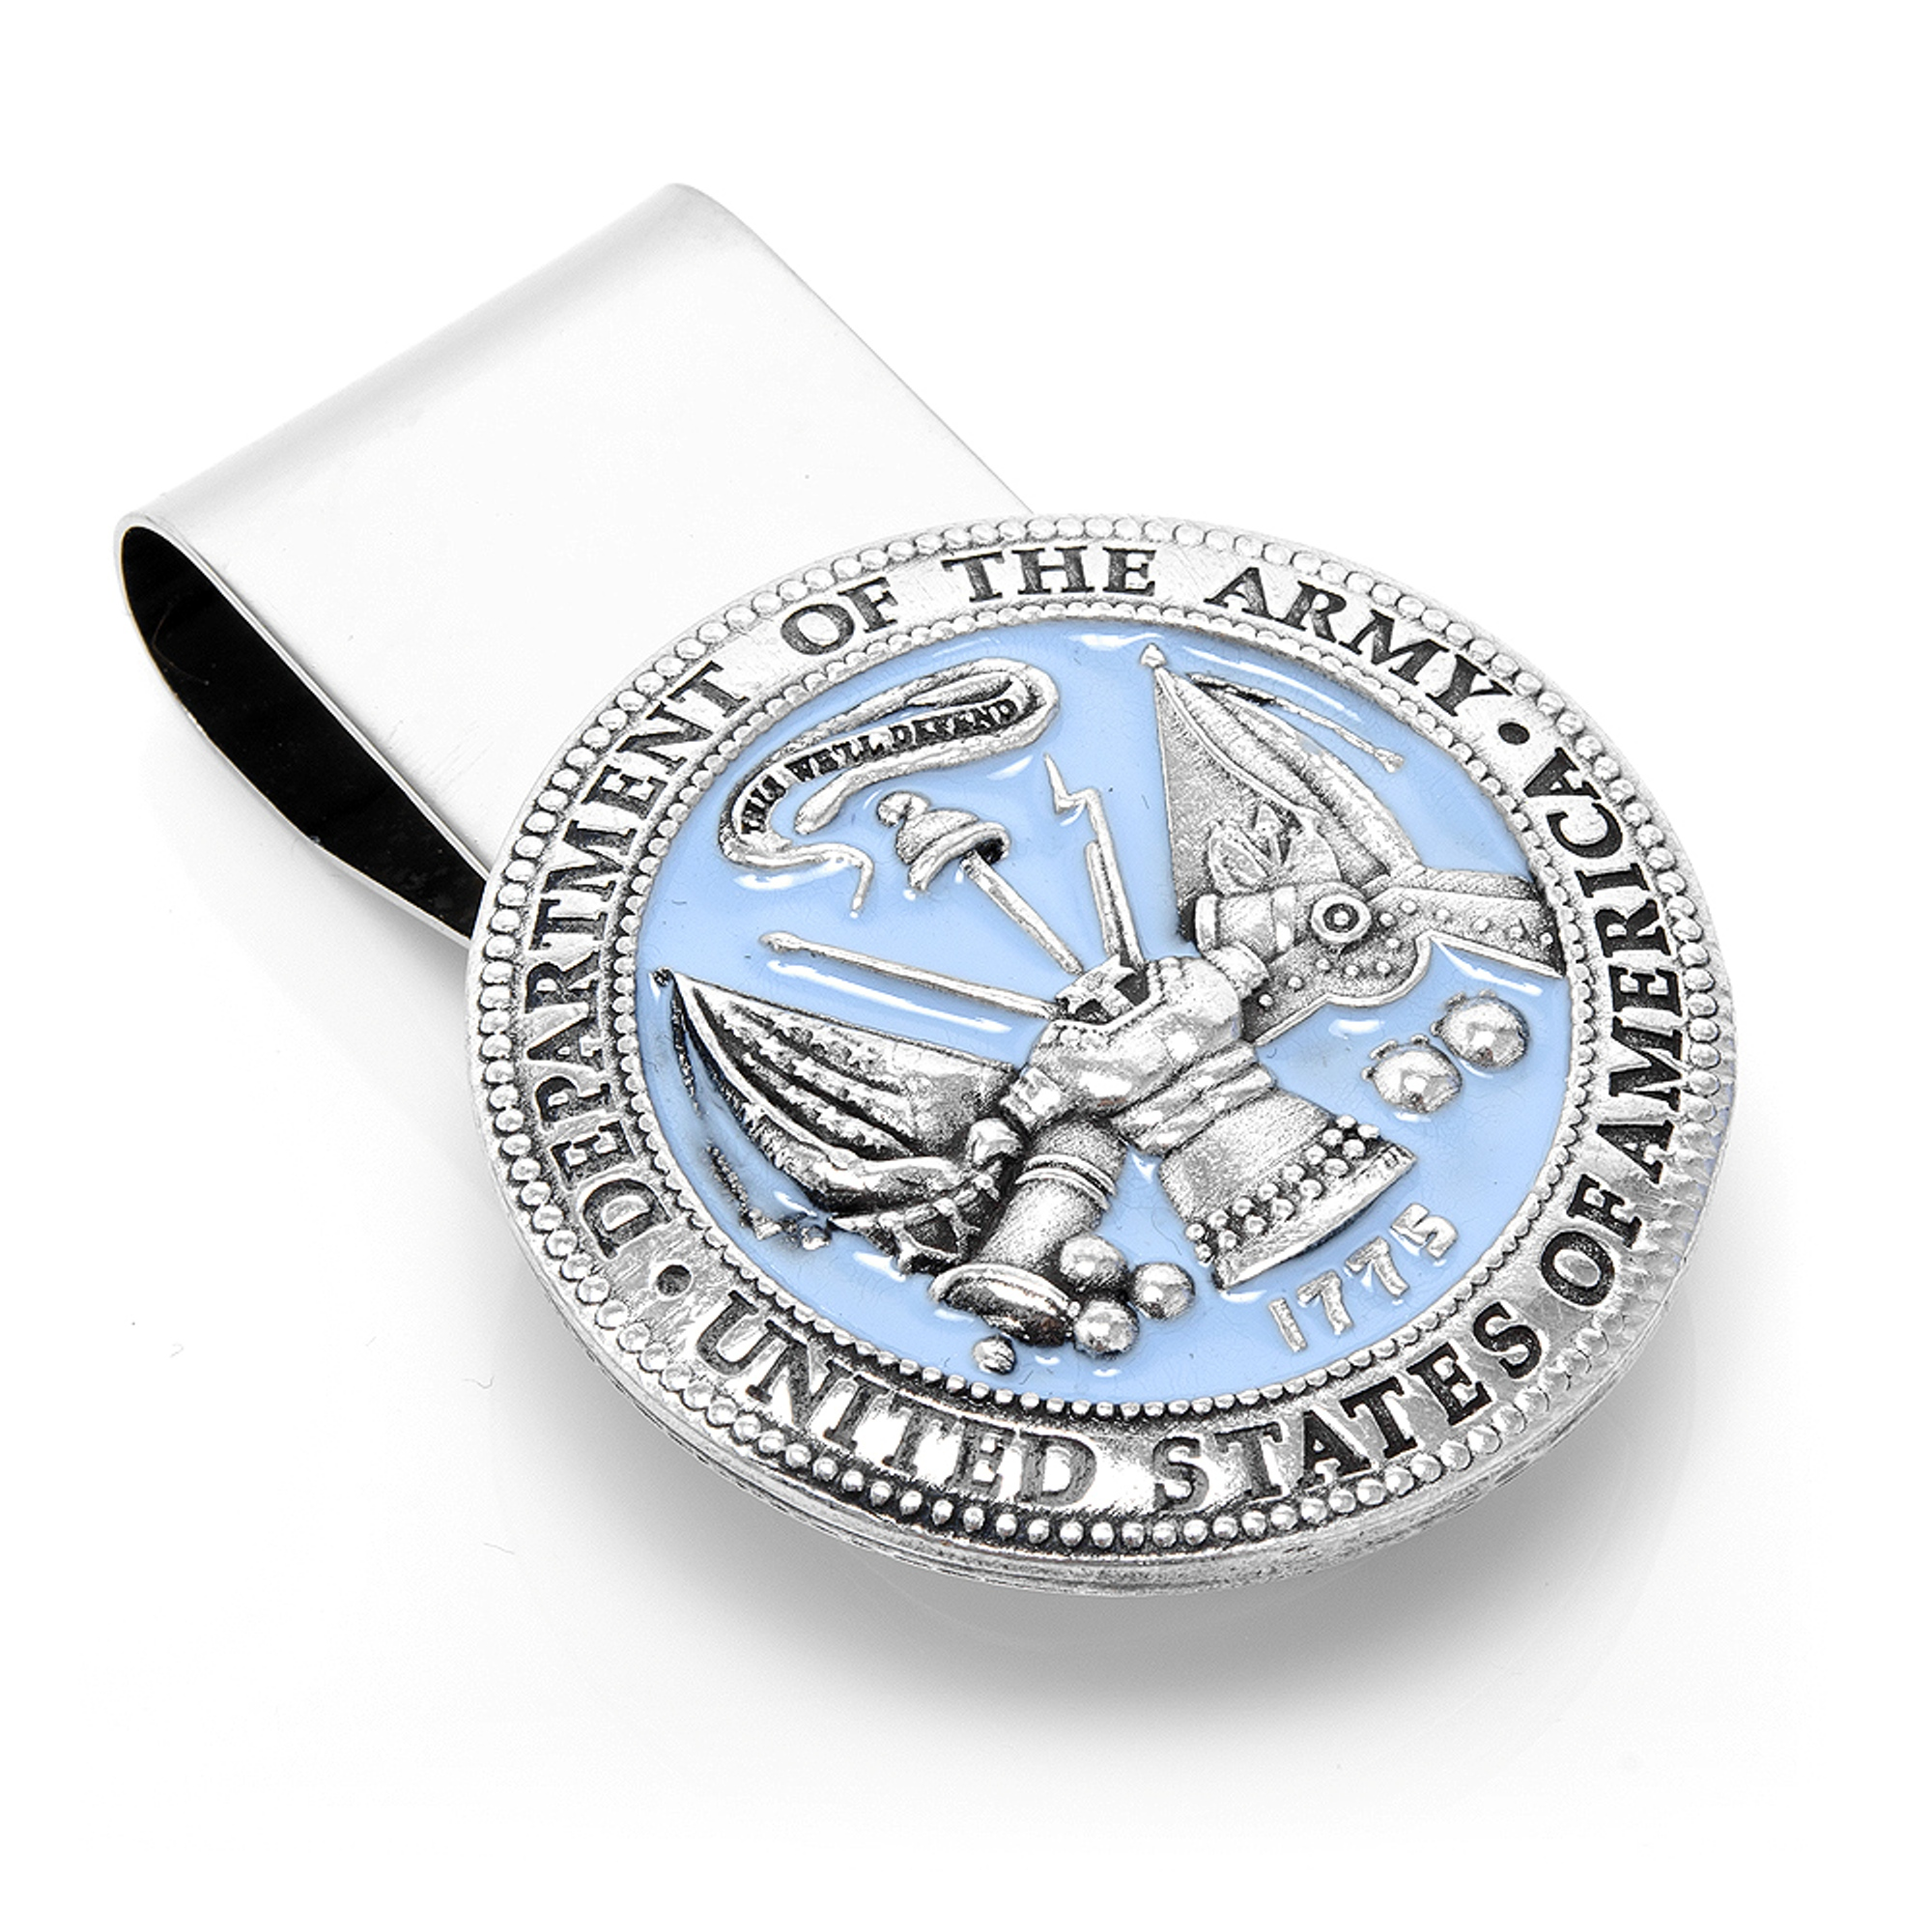 Mens Plated Pewter U.S. Army Money Clip MC3153EB NEW